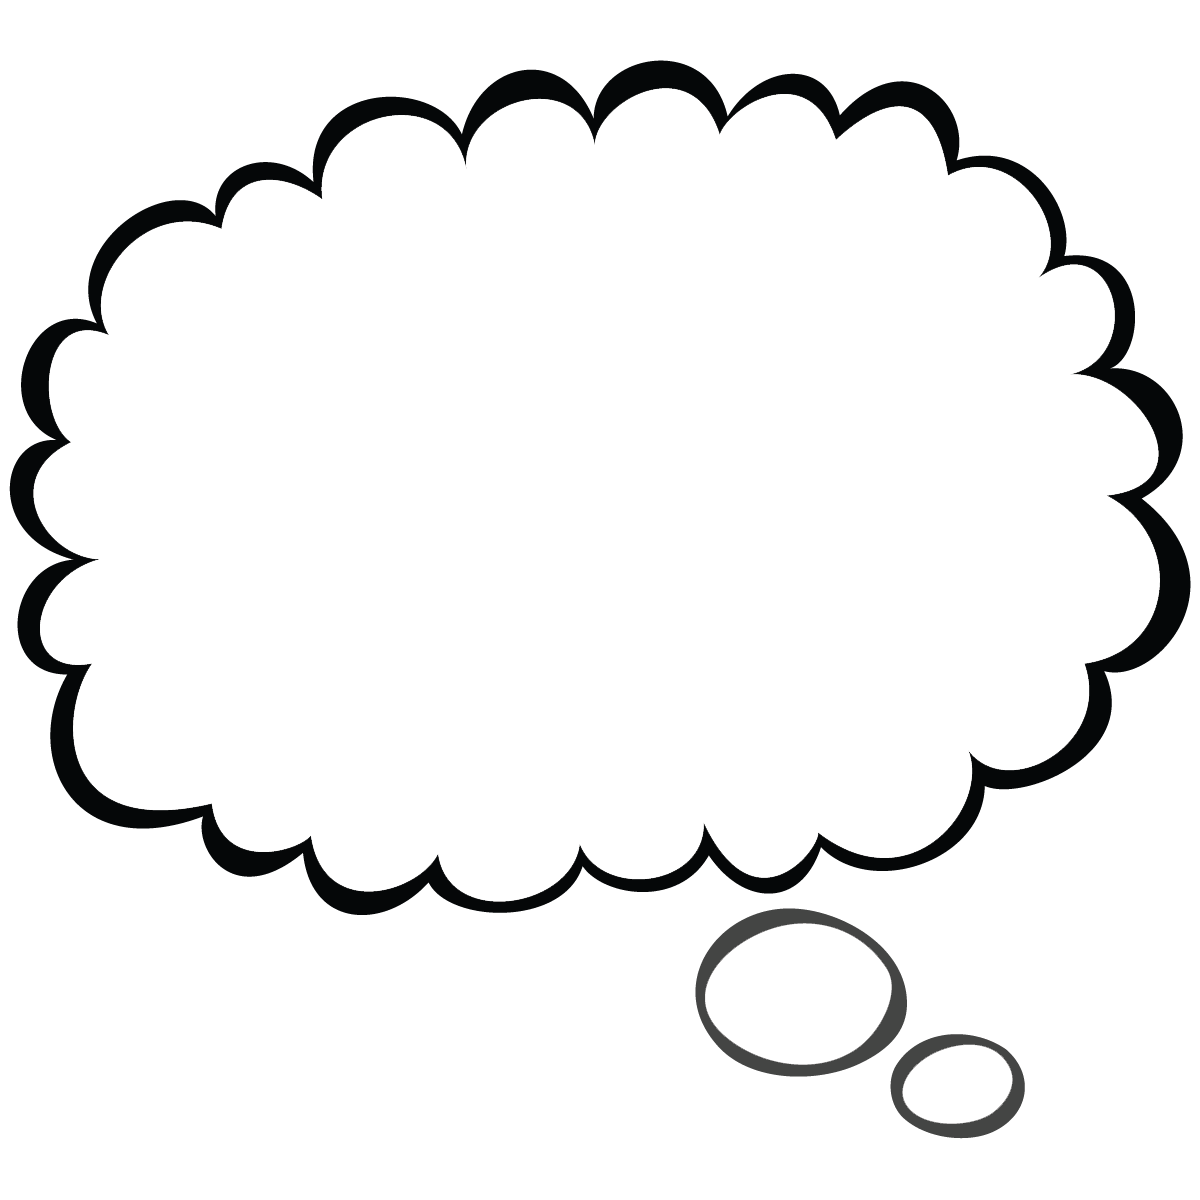 Thought bubble png.